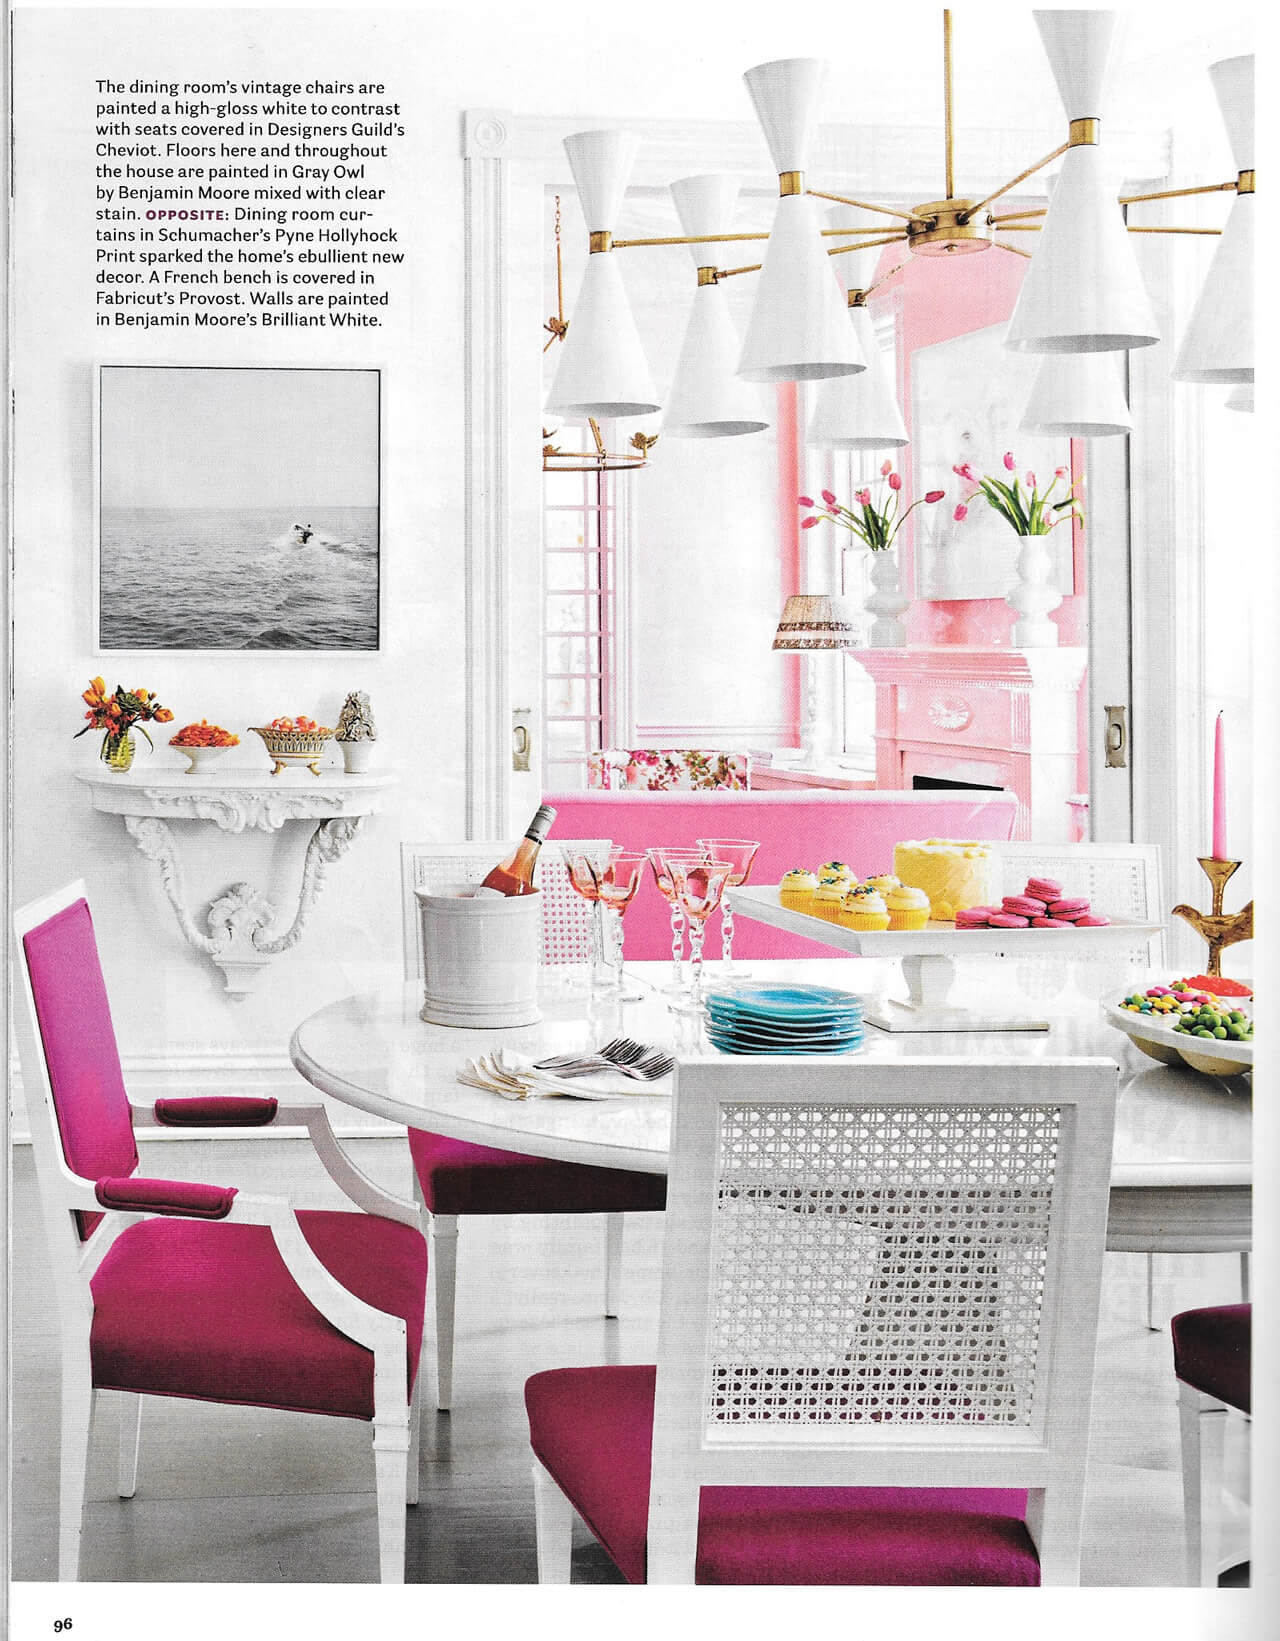 A dining room designed by Suellen Gregory for the House Beautiful September 2016 issue